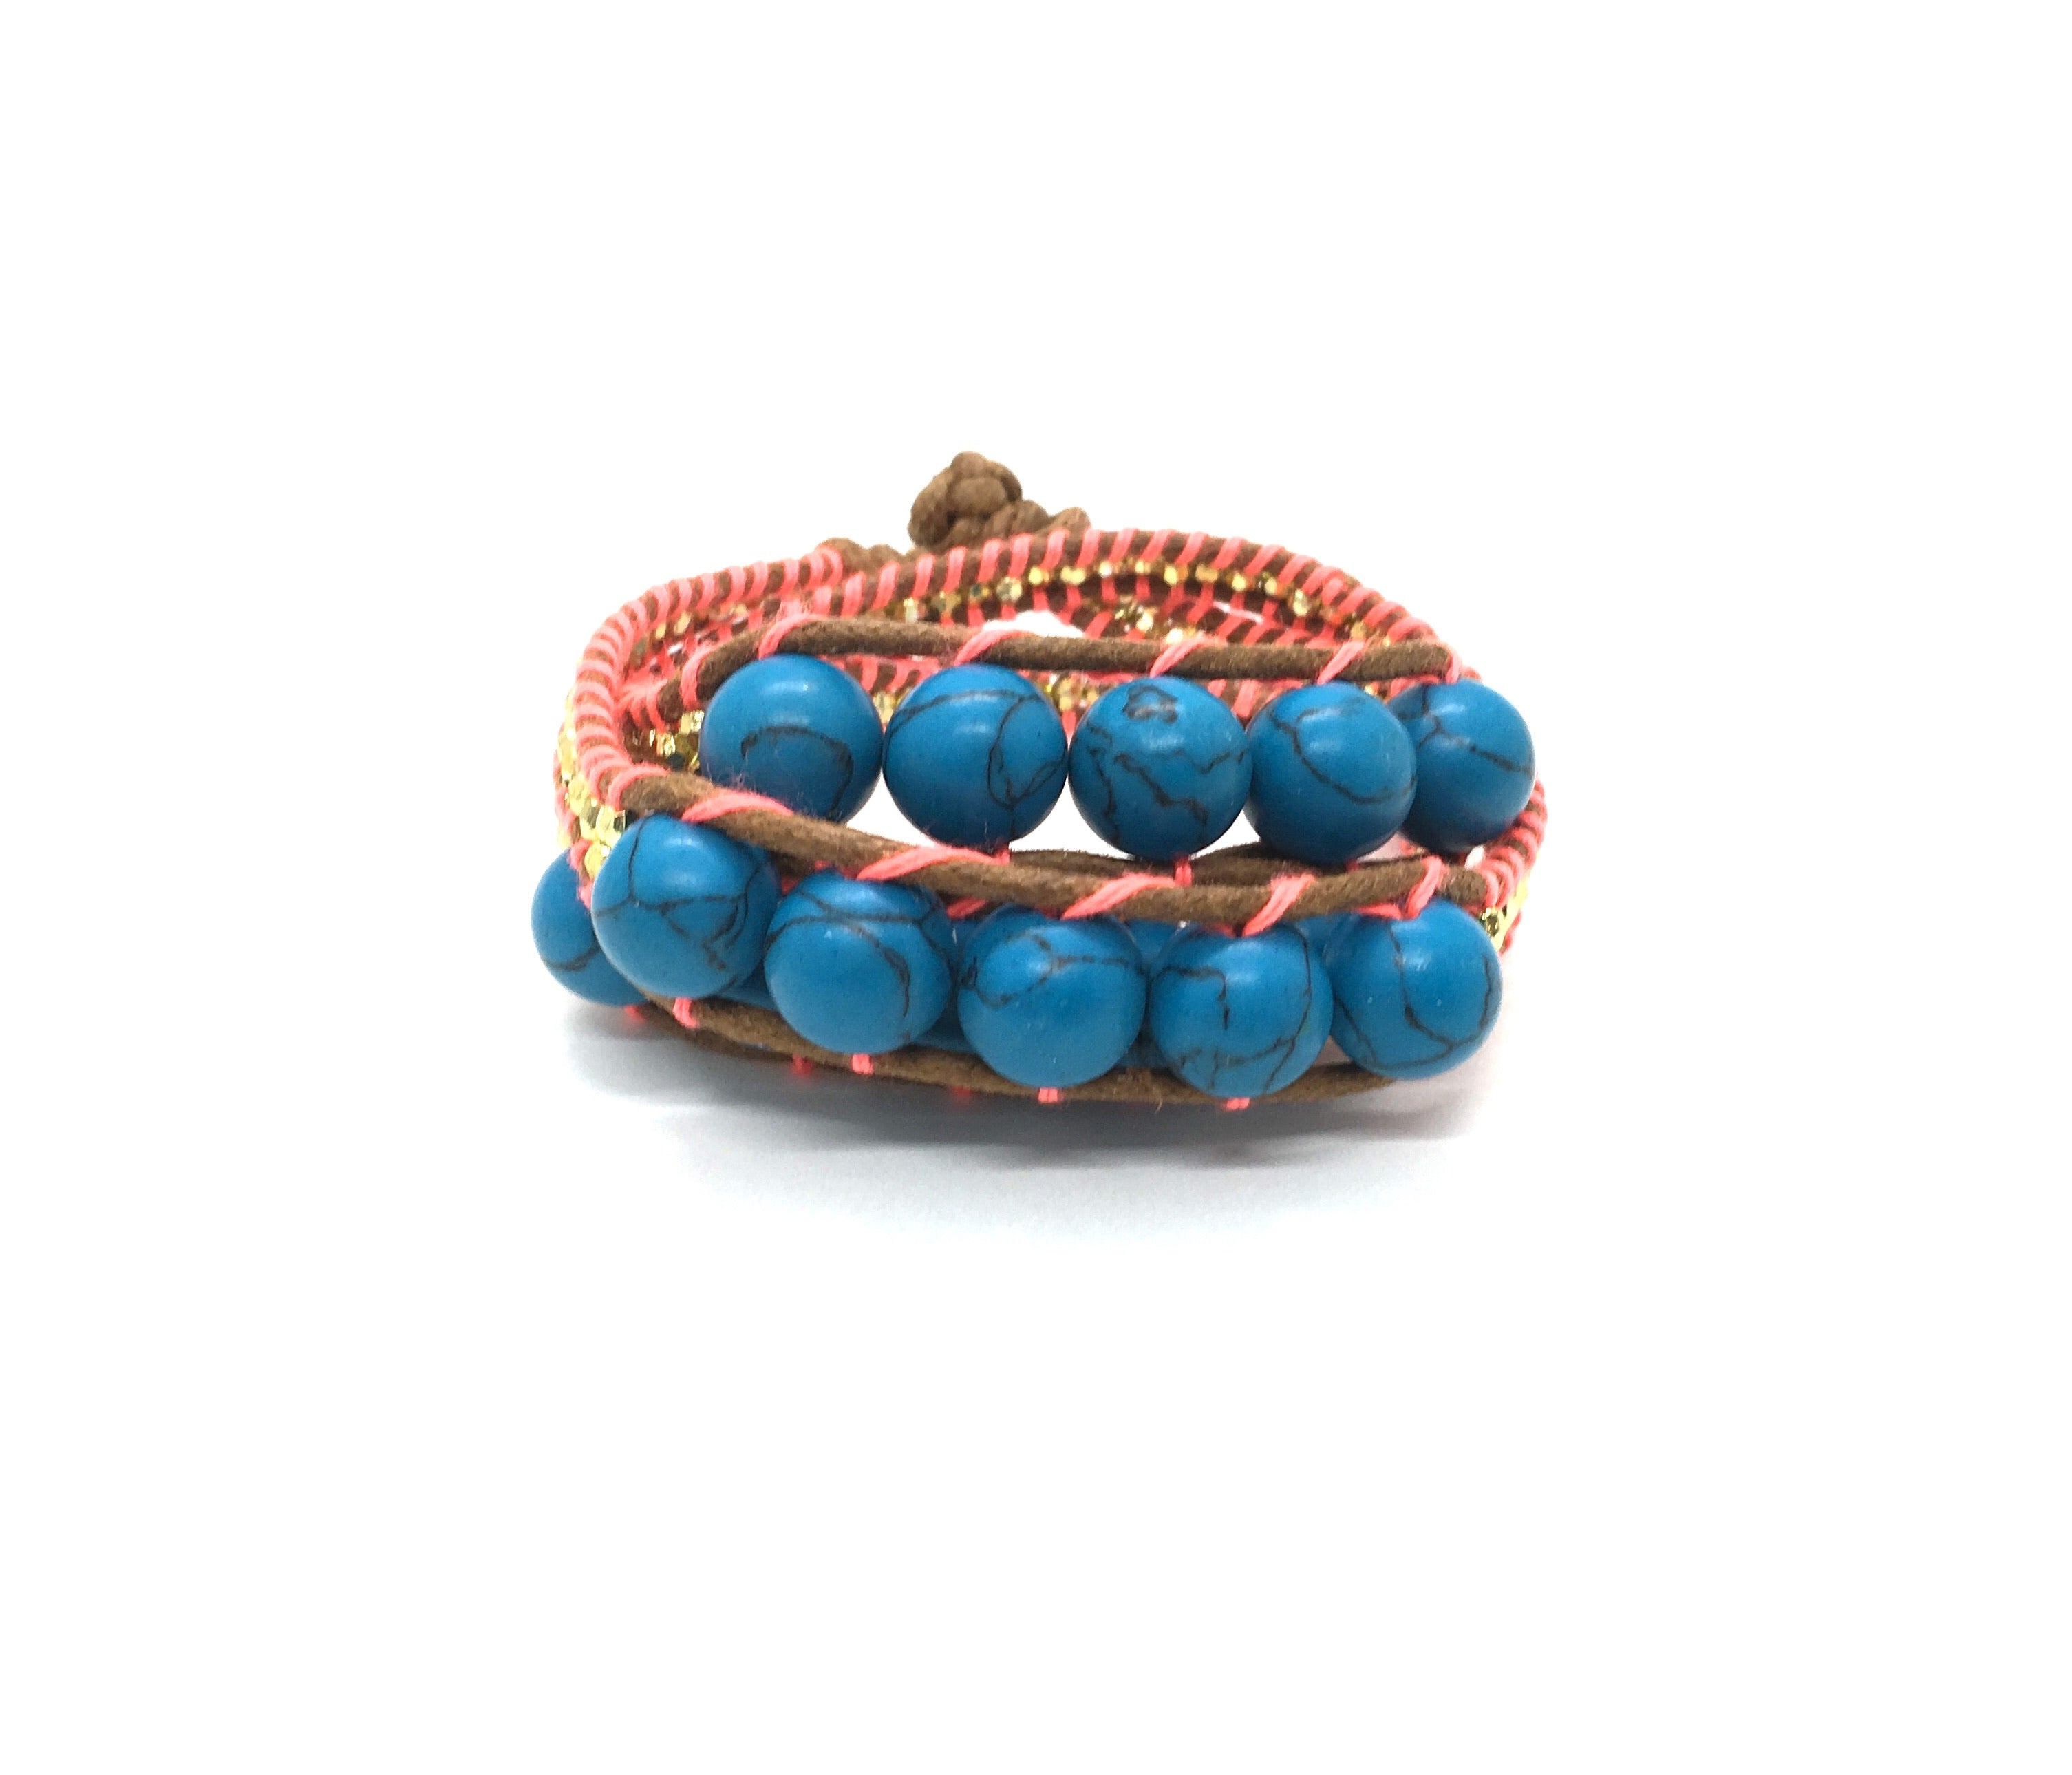 Wraparound Bracelet marbled Blue stone, gold resin side beads, brown cord fluo coral thread.